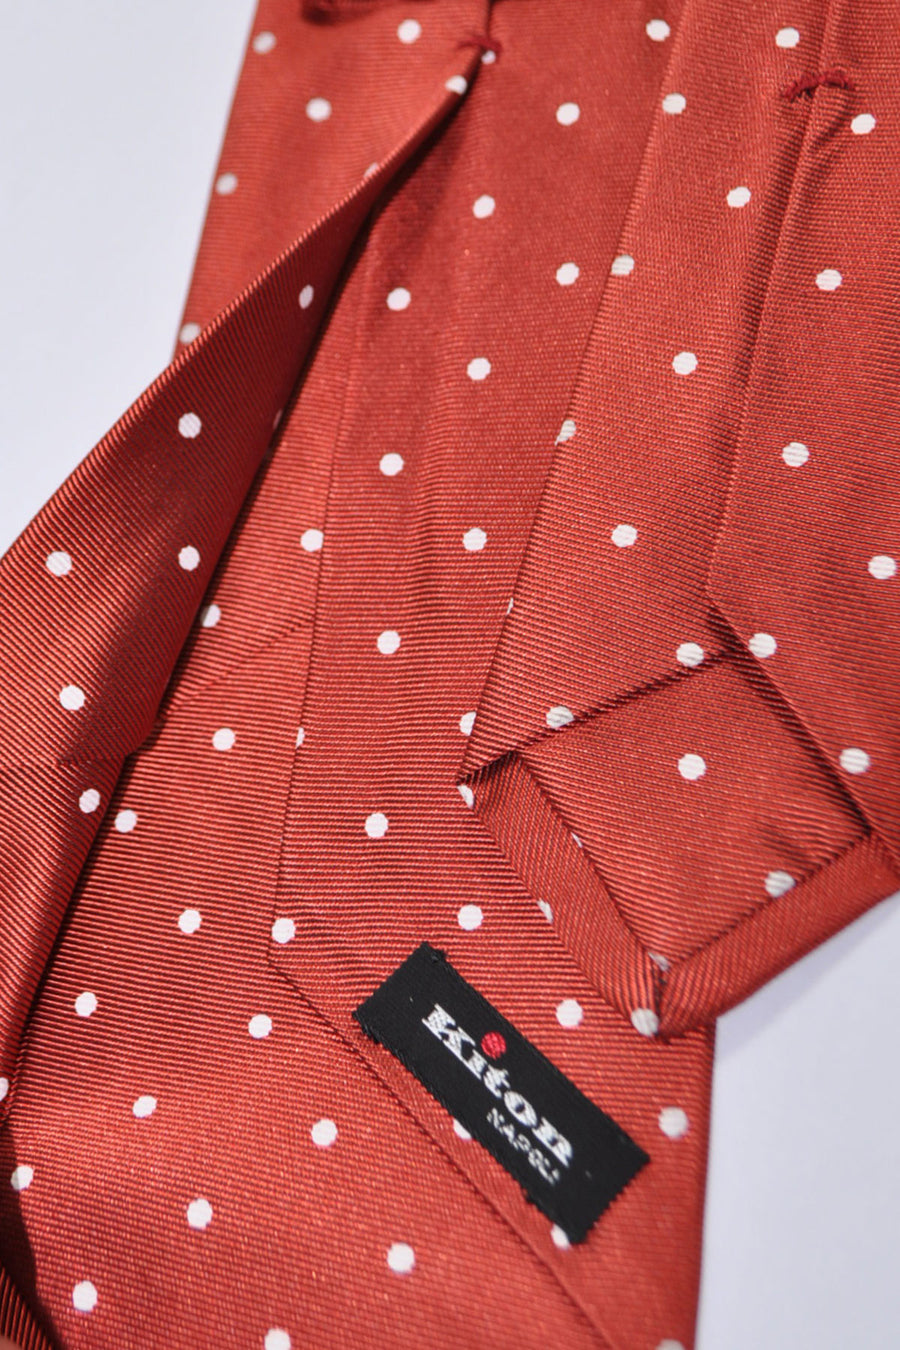 Kiton Tie Rust Orange White Dots - Sevenfold Necktie